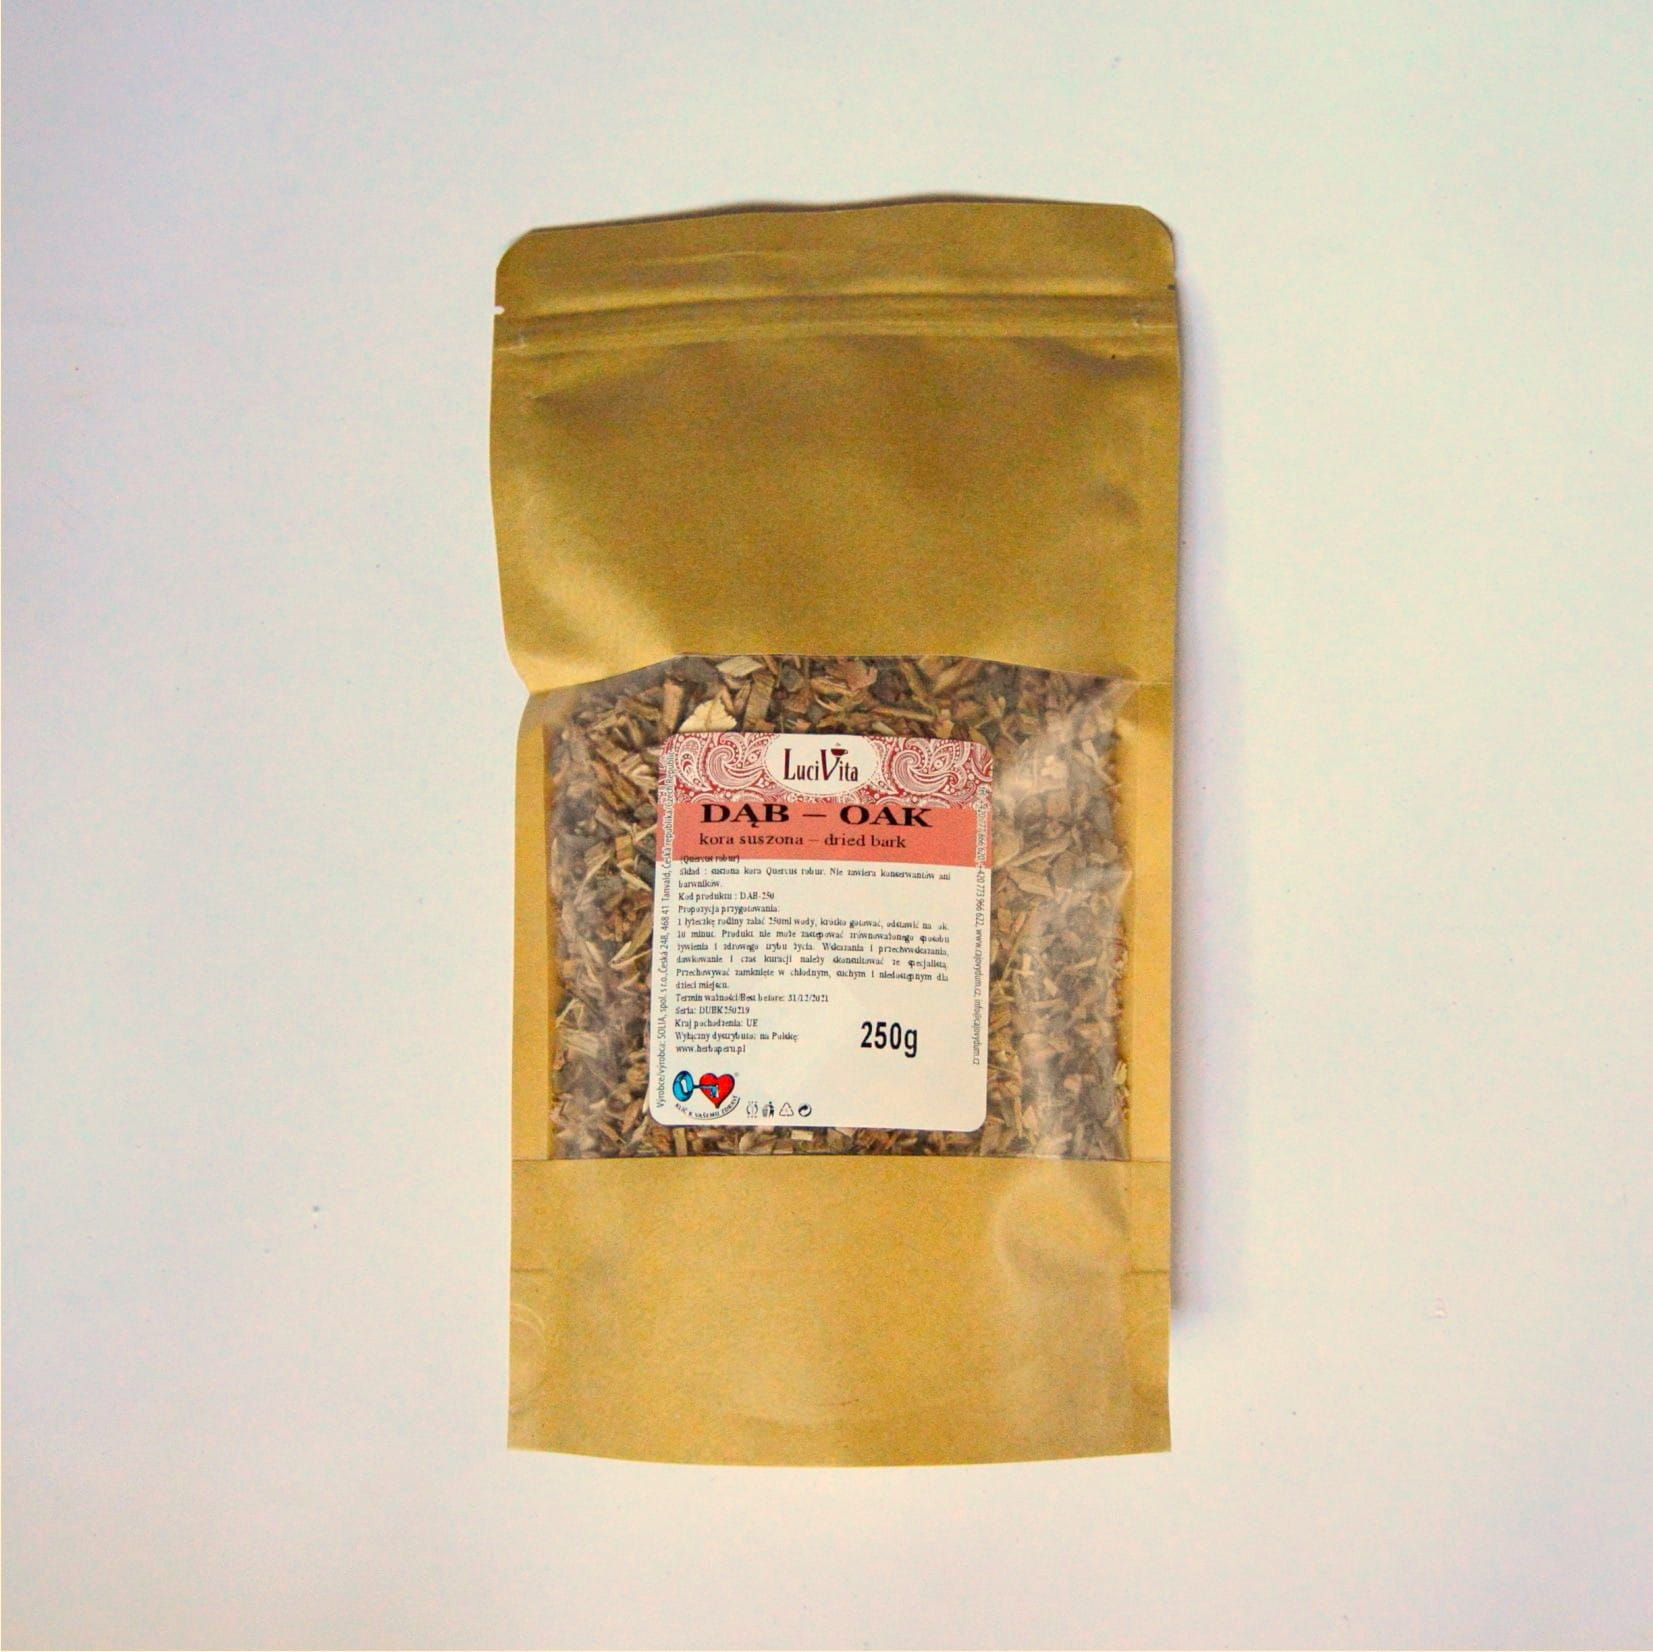 Common oak - bark - 250g